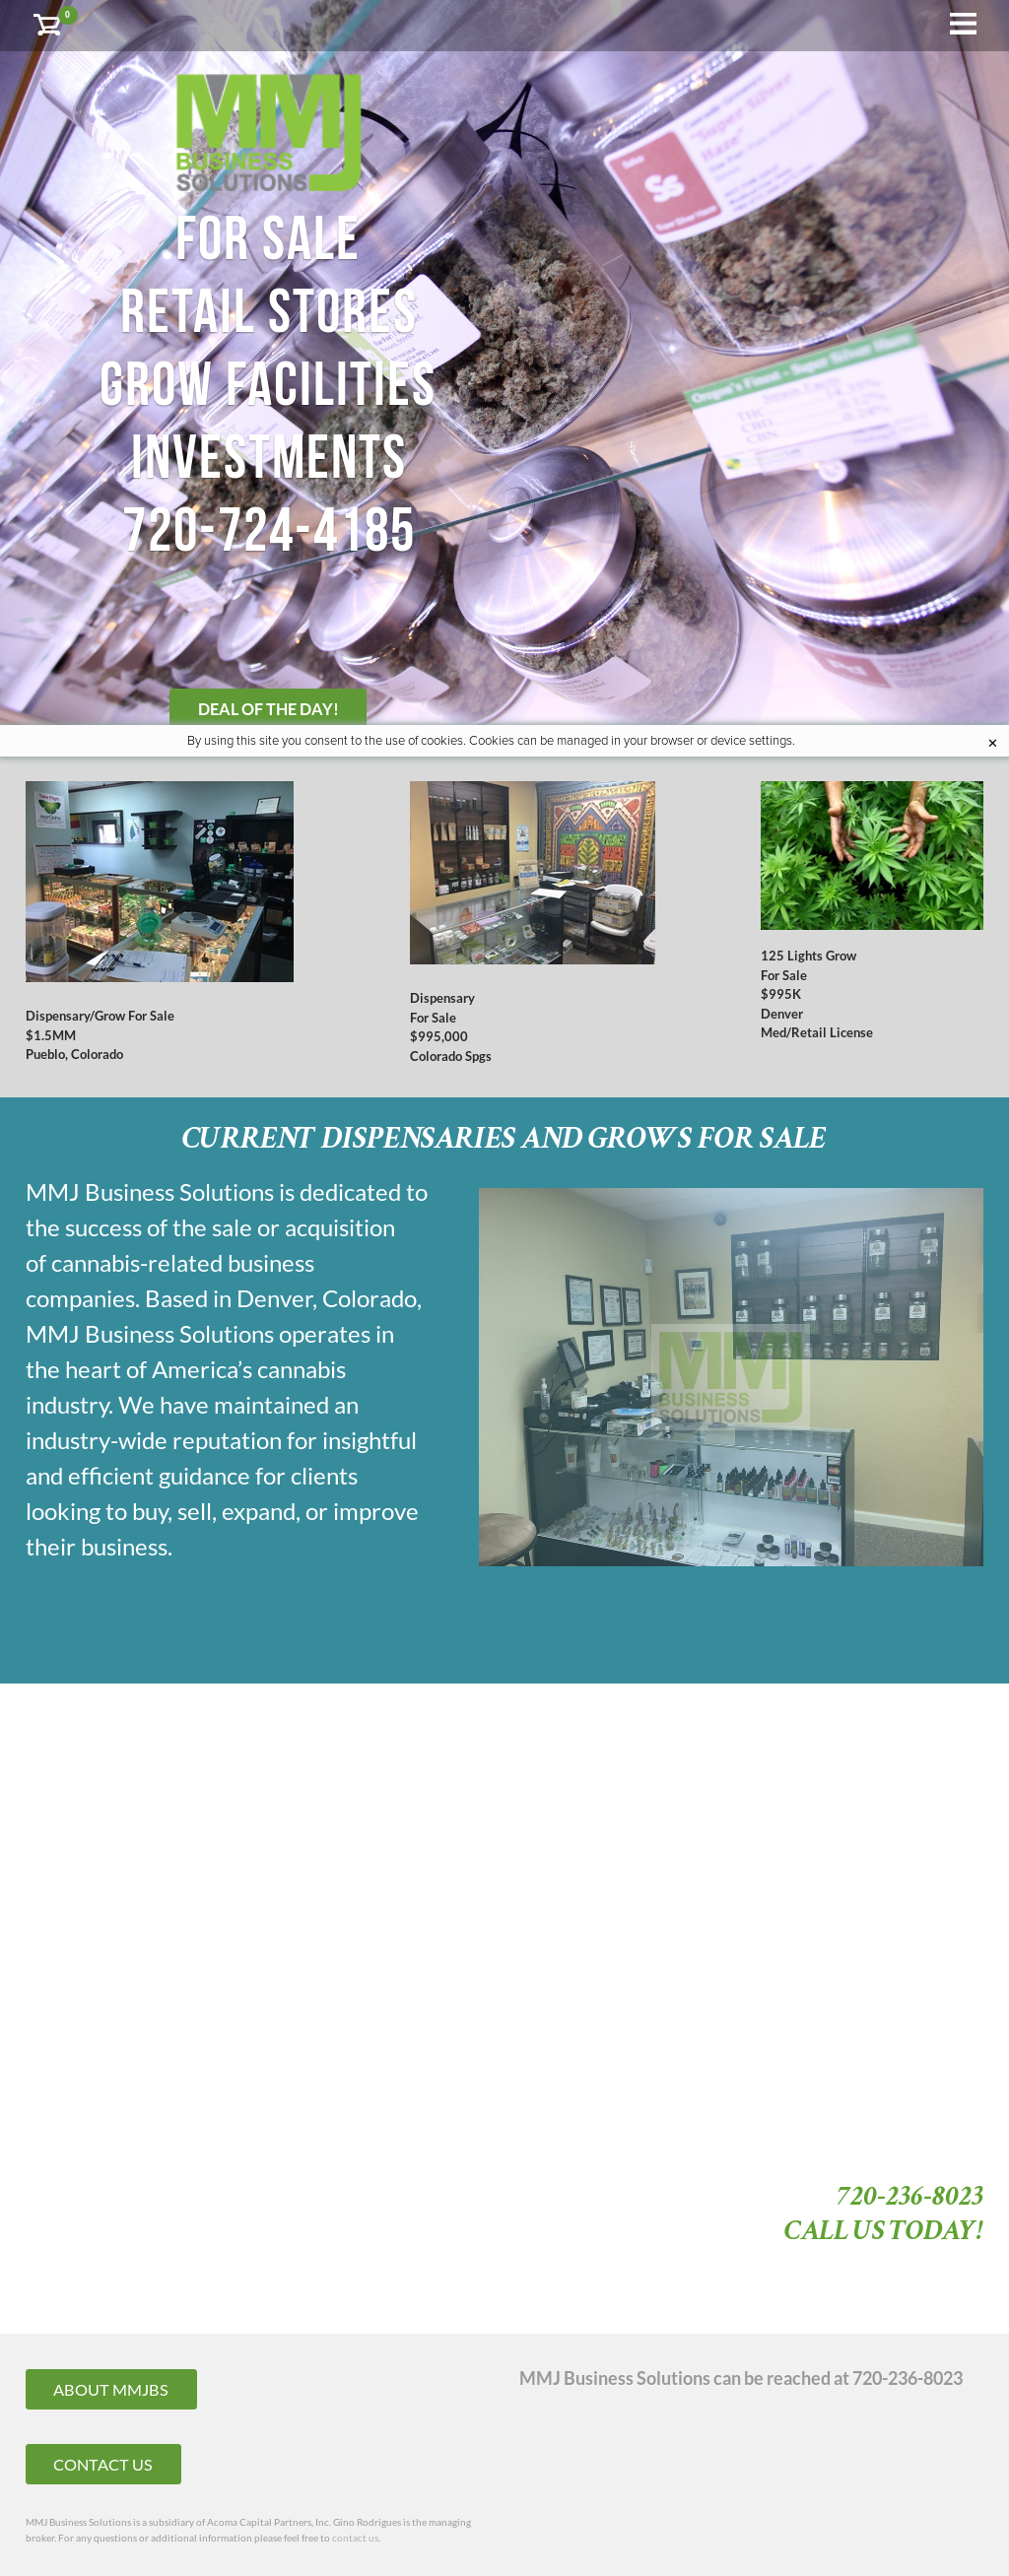 Mmj Business Solutions Competitors, Revenue and Employees